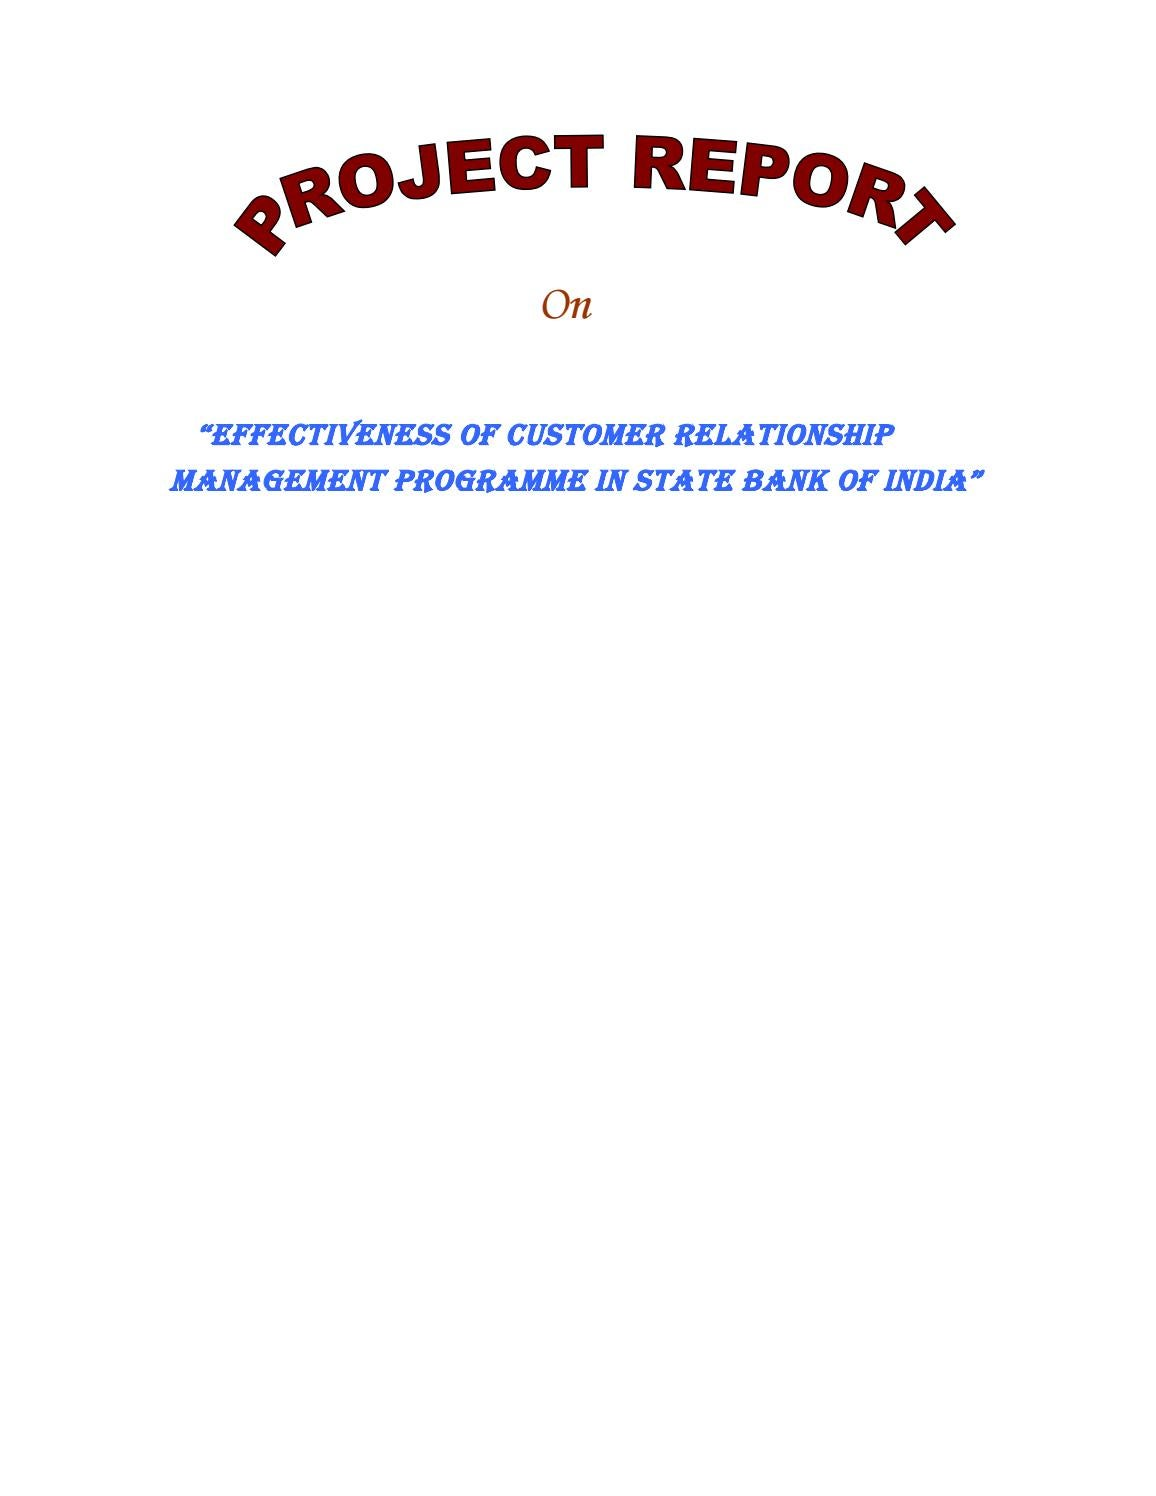 Effectiveness of customer relationship management programme